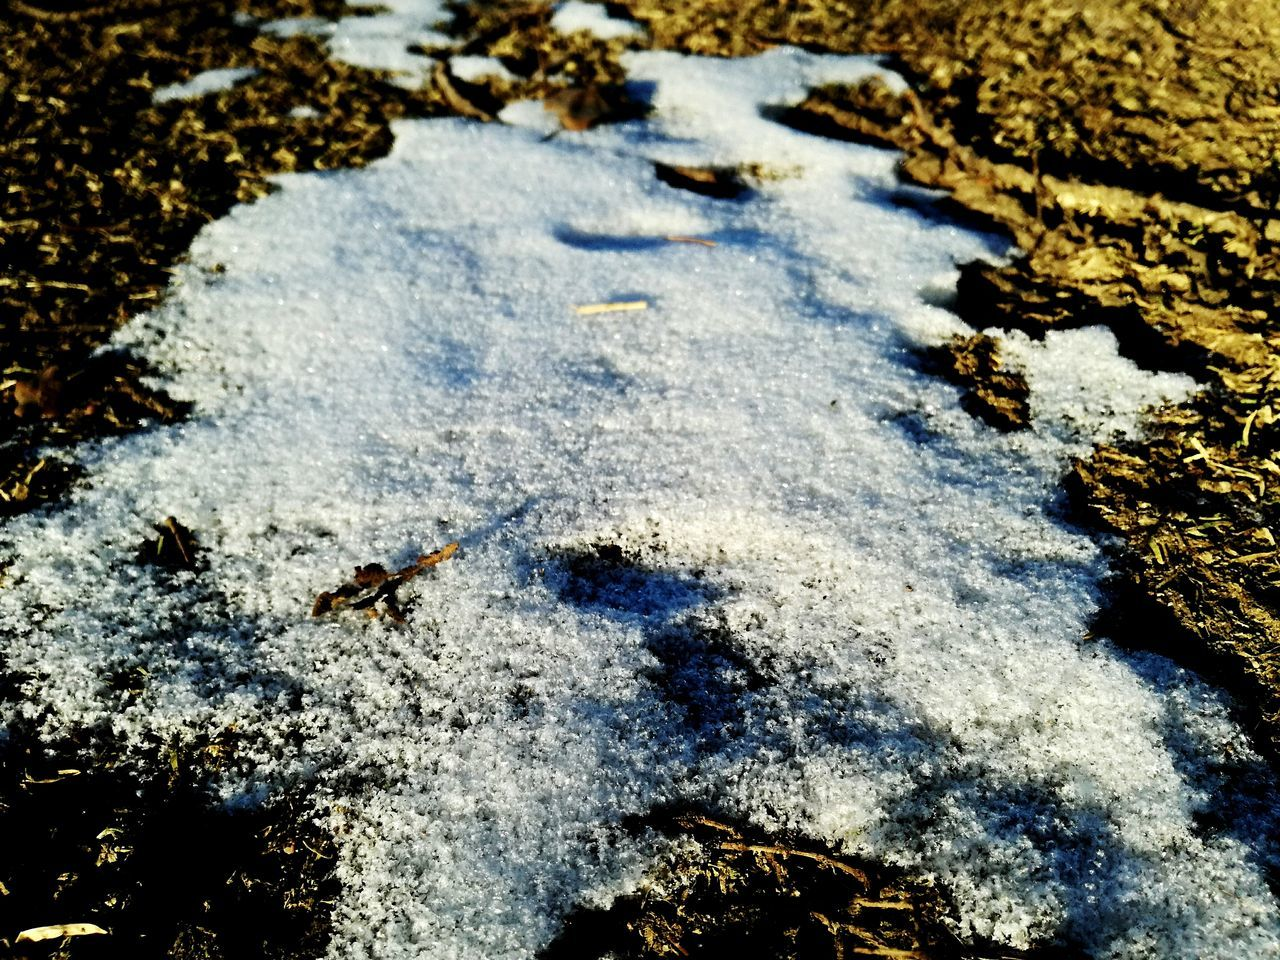 High Angle View Beach Nature Sand Day Sunlight Outdoors Animal Track Paw Print No People Close-up Beauty In Nature Winter Space Shadow Sun Rays Shiny Highlights Grassfield Sunlight Earth Colours Earth Upclose Iceland Illuminated Nature